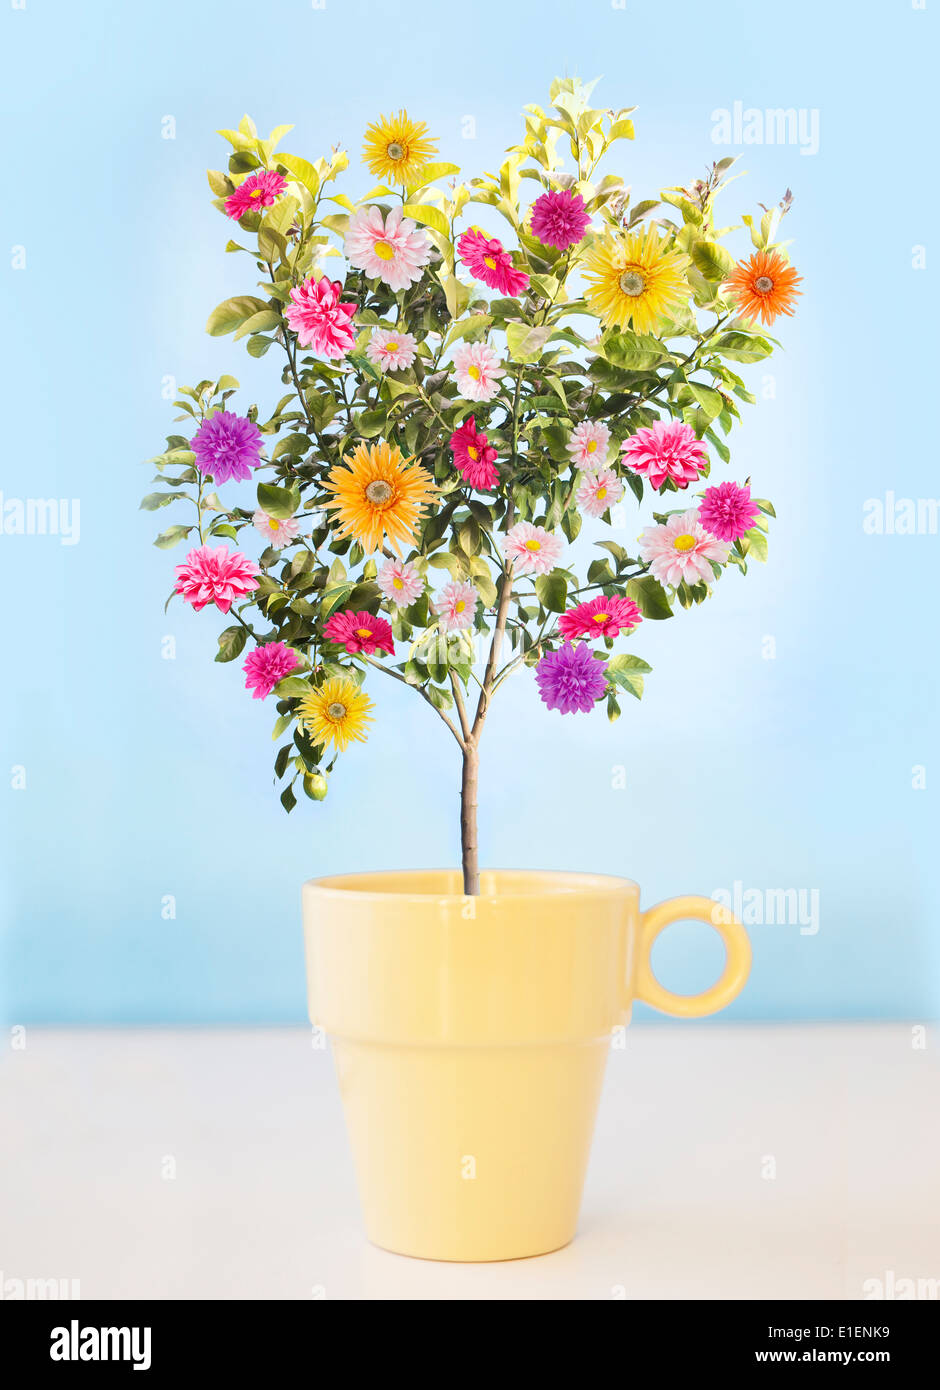 flower tree growing out of yellow coffee cup - Stock Image